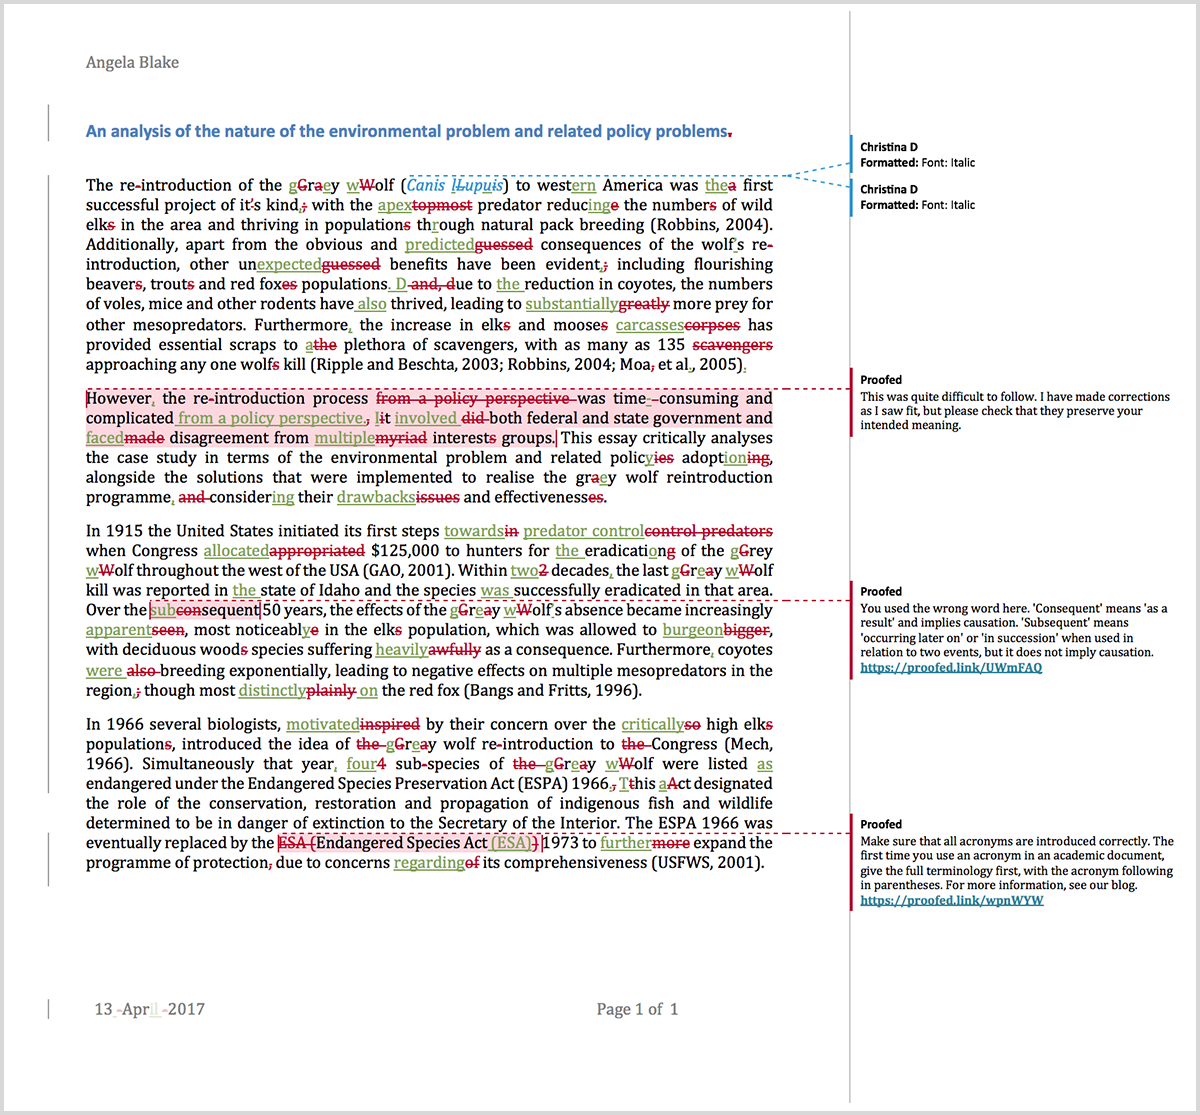 Essay proofreading example after editing